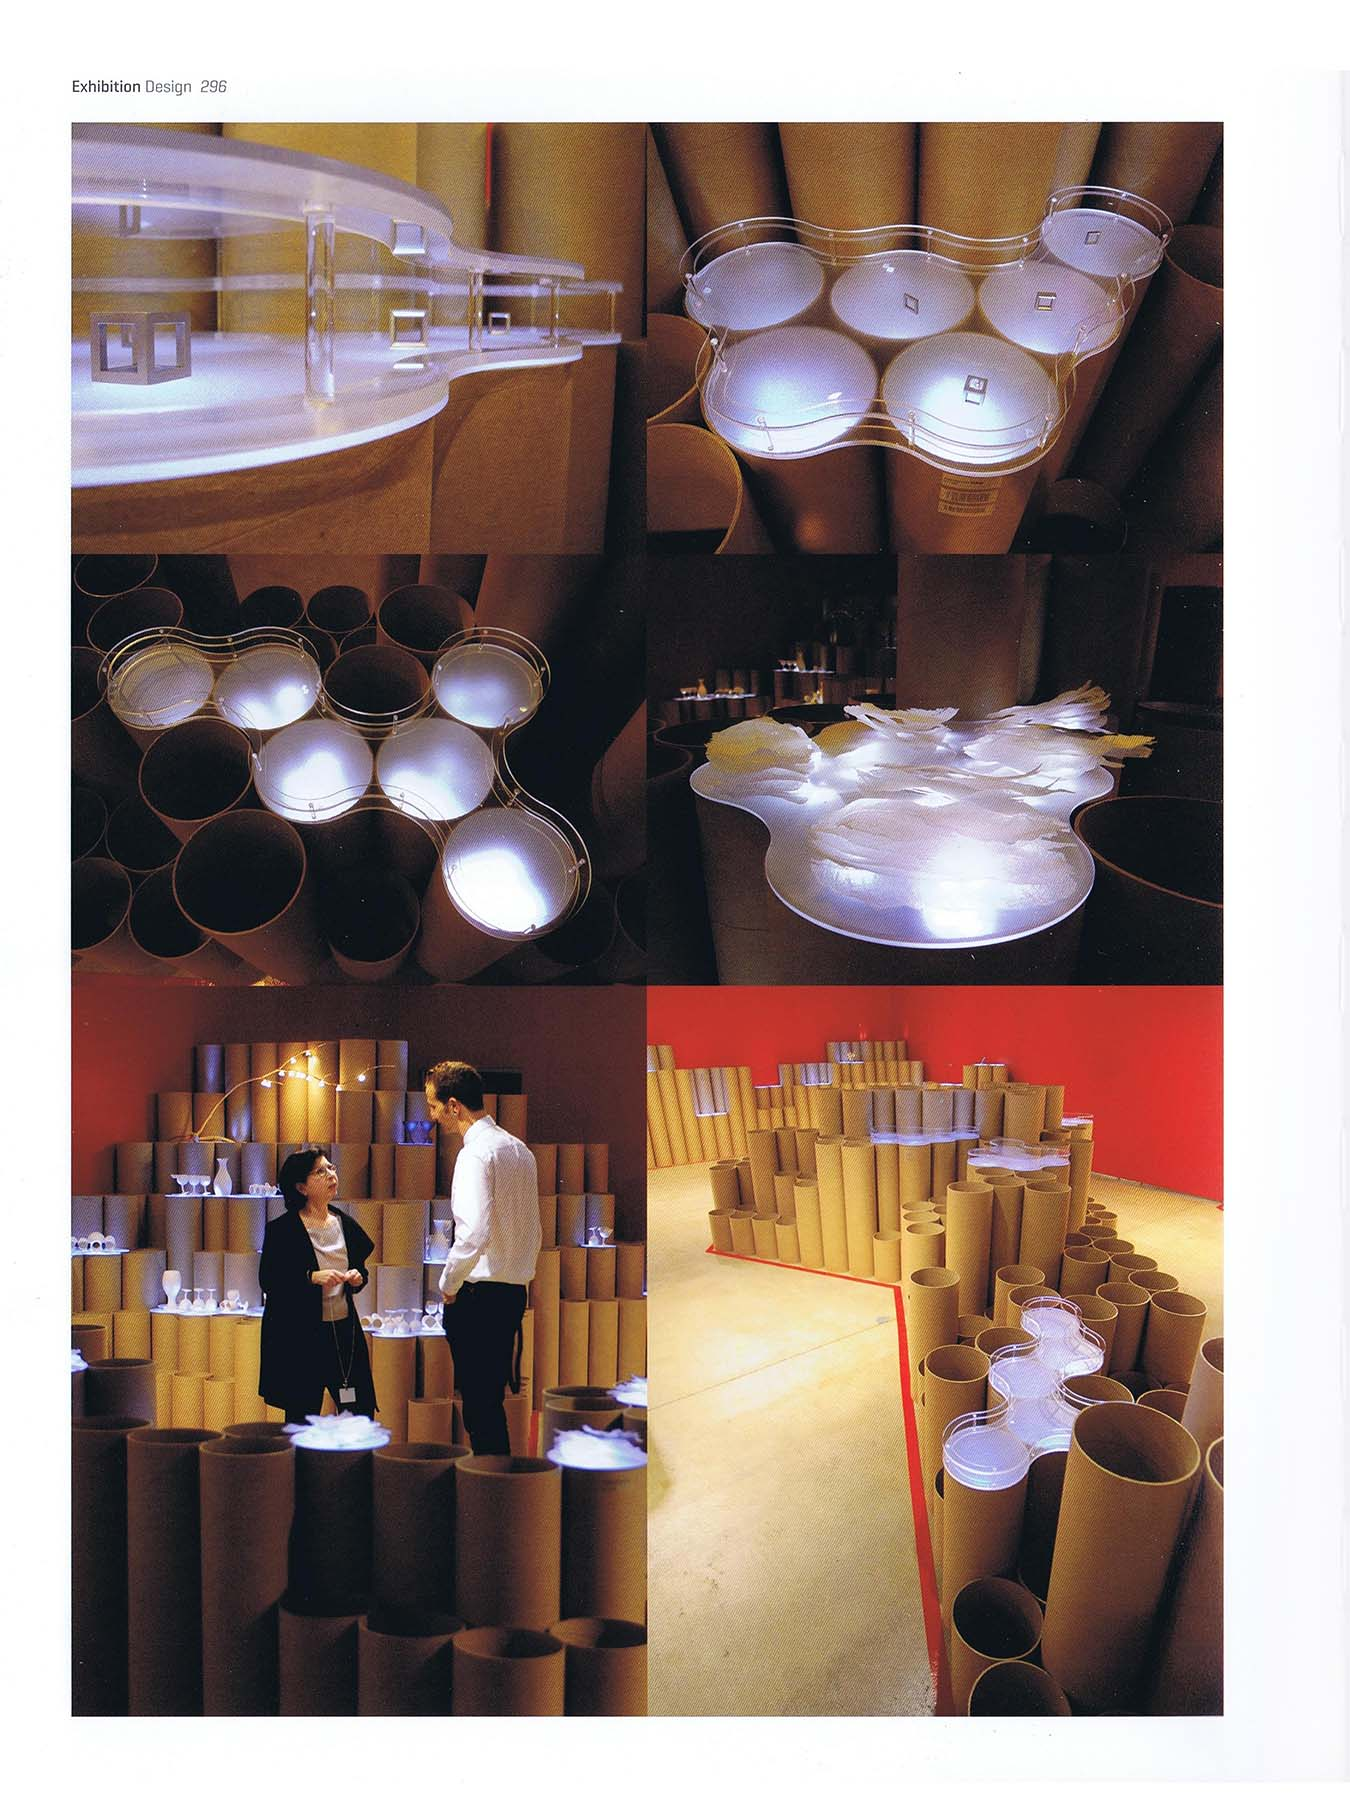 2010_Exhibition Design_Cardboard Figures_04